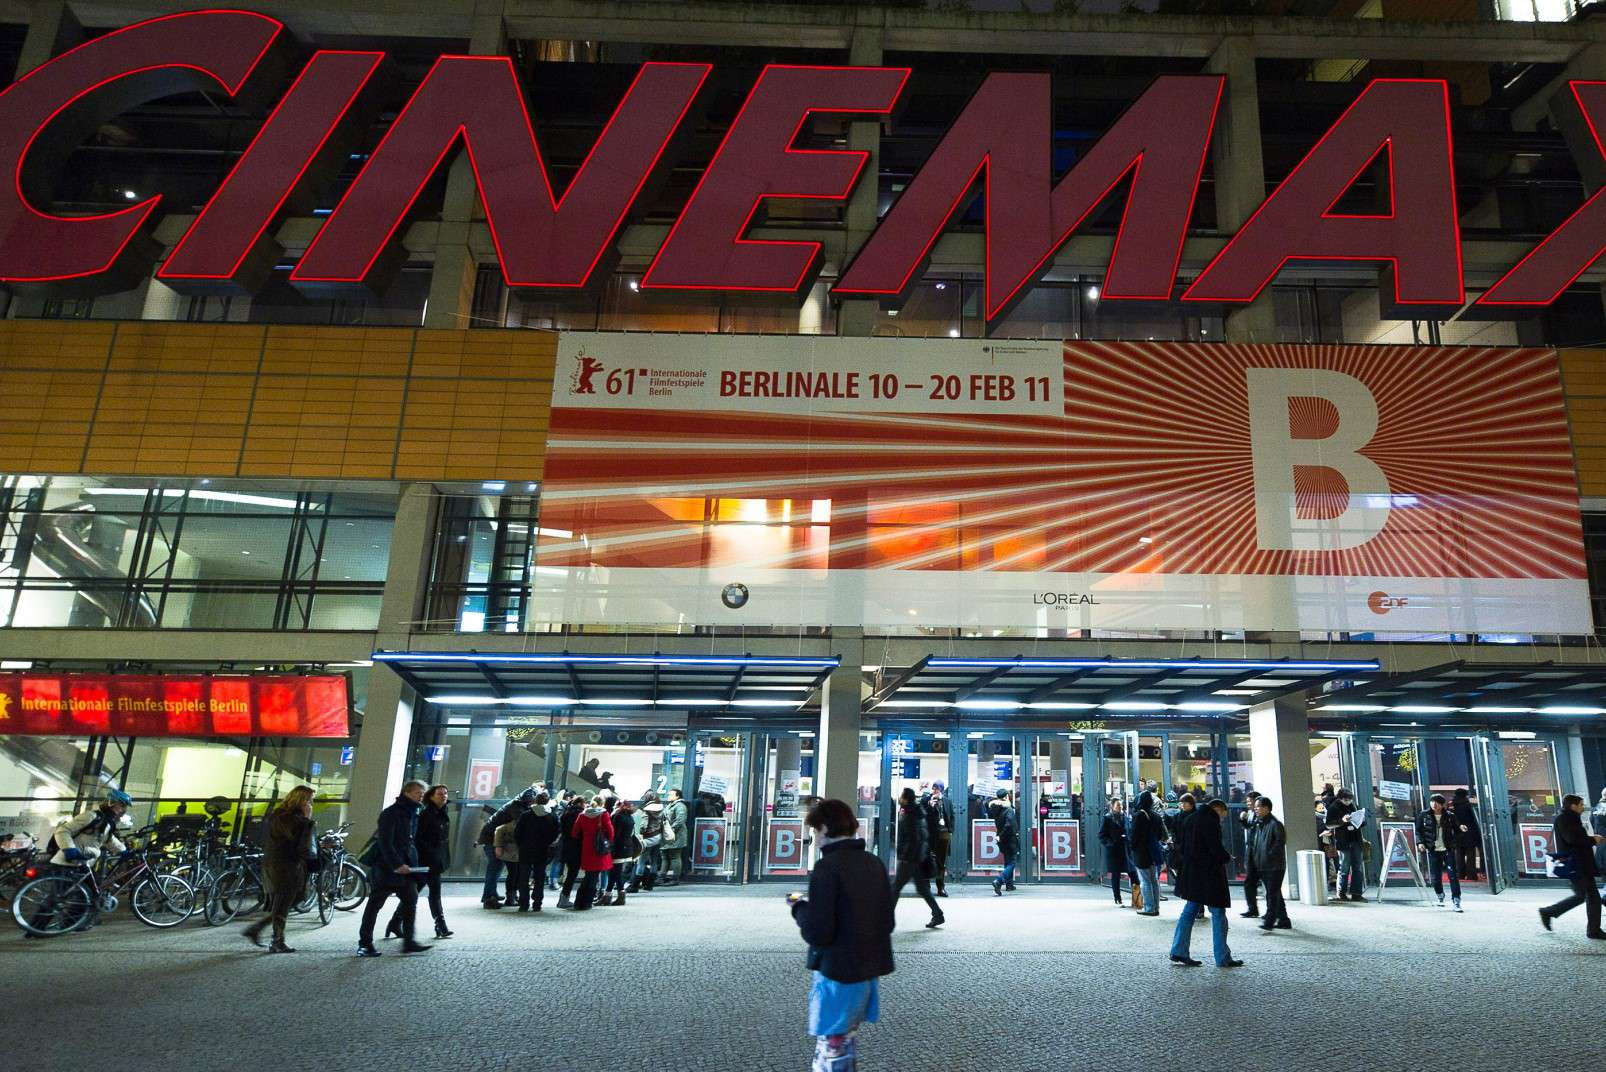 Berlinale 20190 - the Cinemaxx at Potsdamer Platz